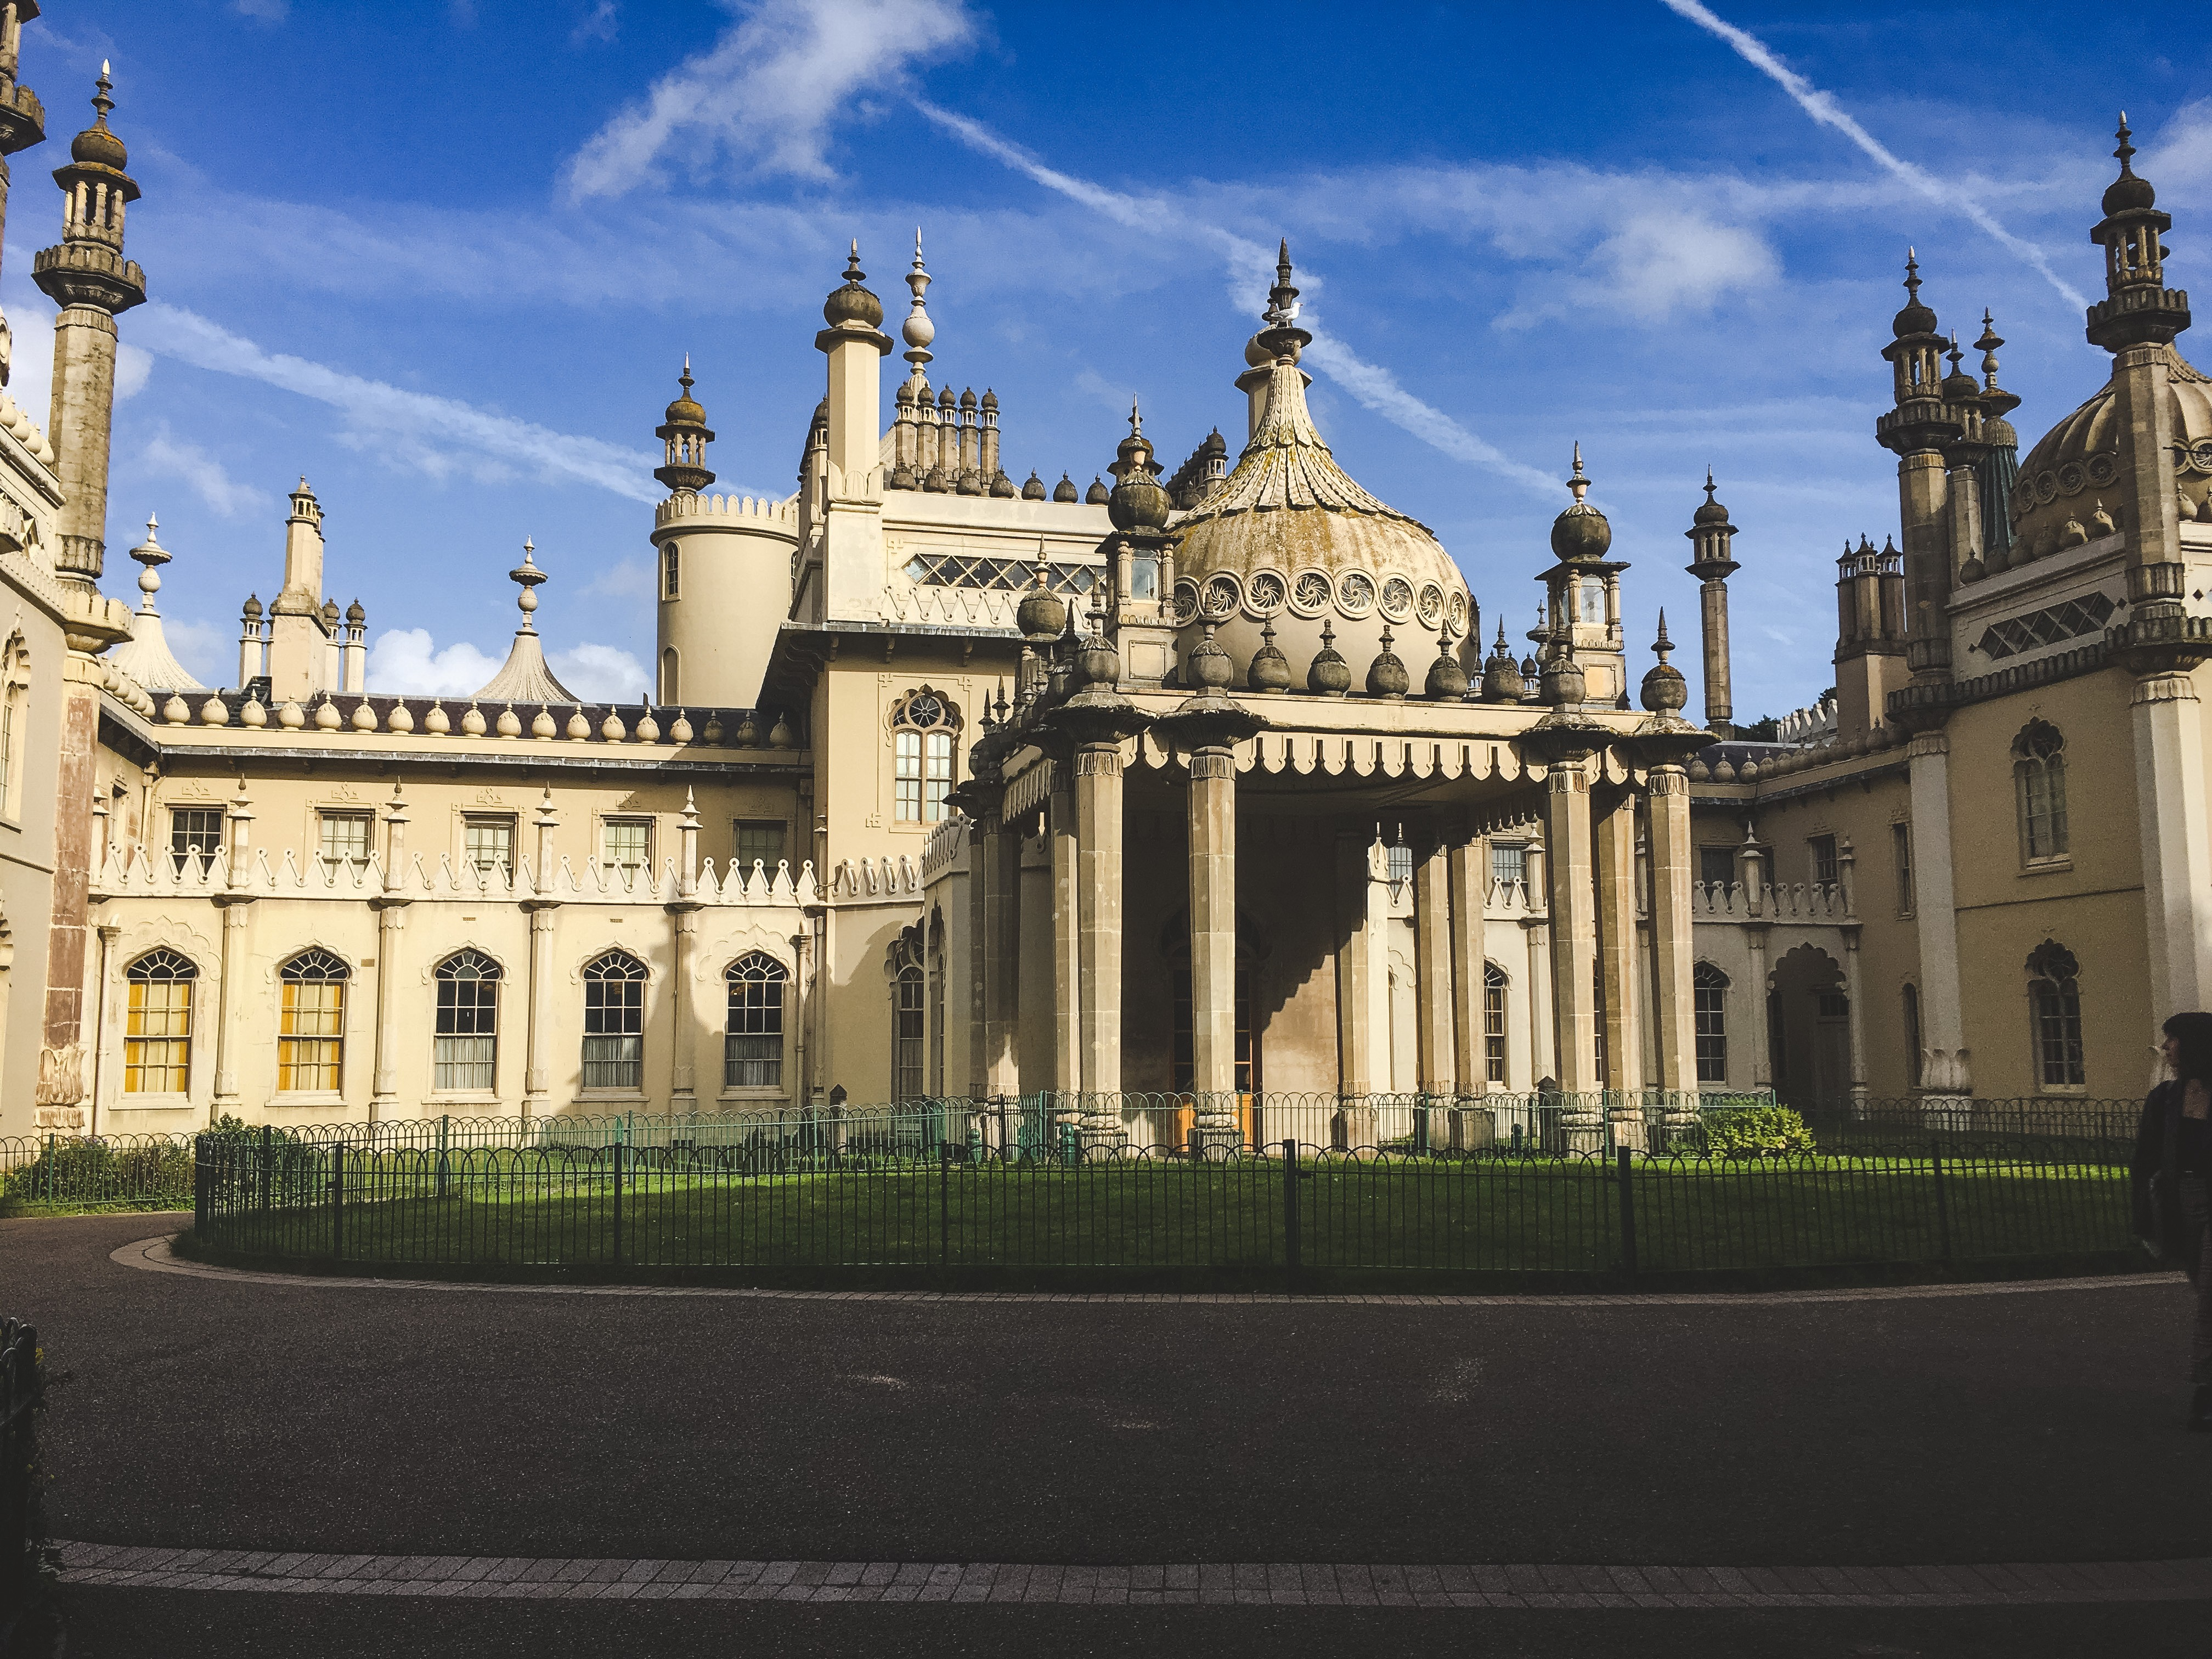 The Royal Pavilion is unlike anything else in England